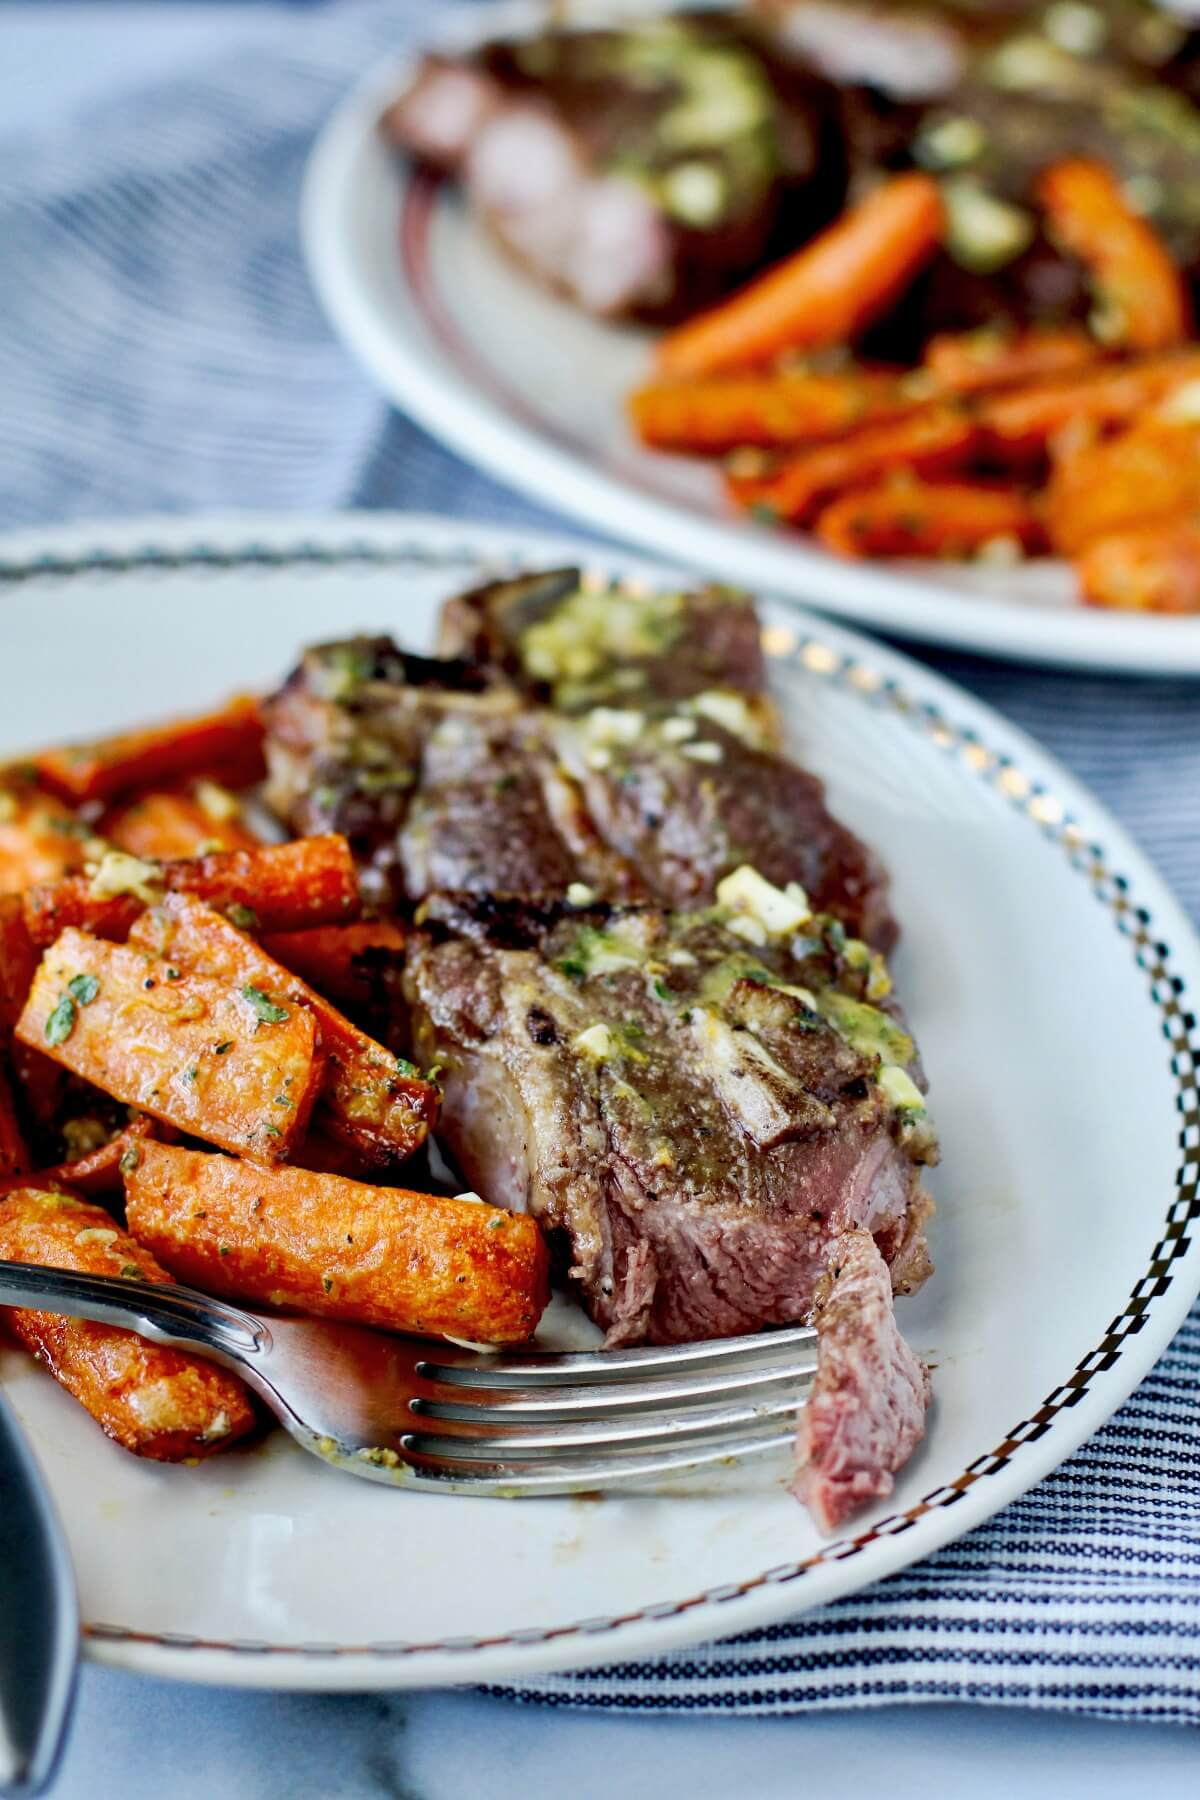 Air fryer lamb chops and carrots for dinner